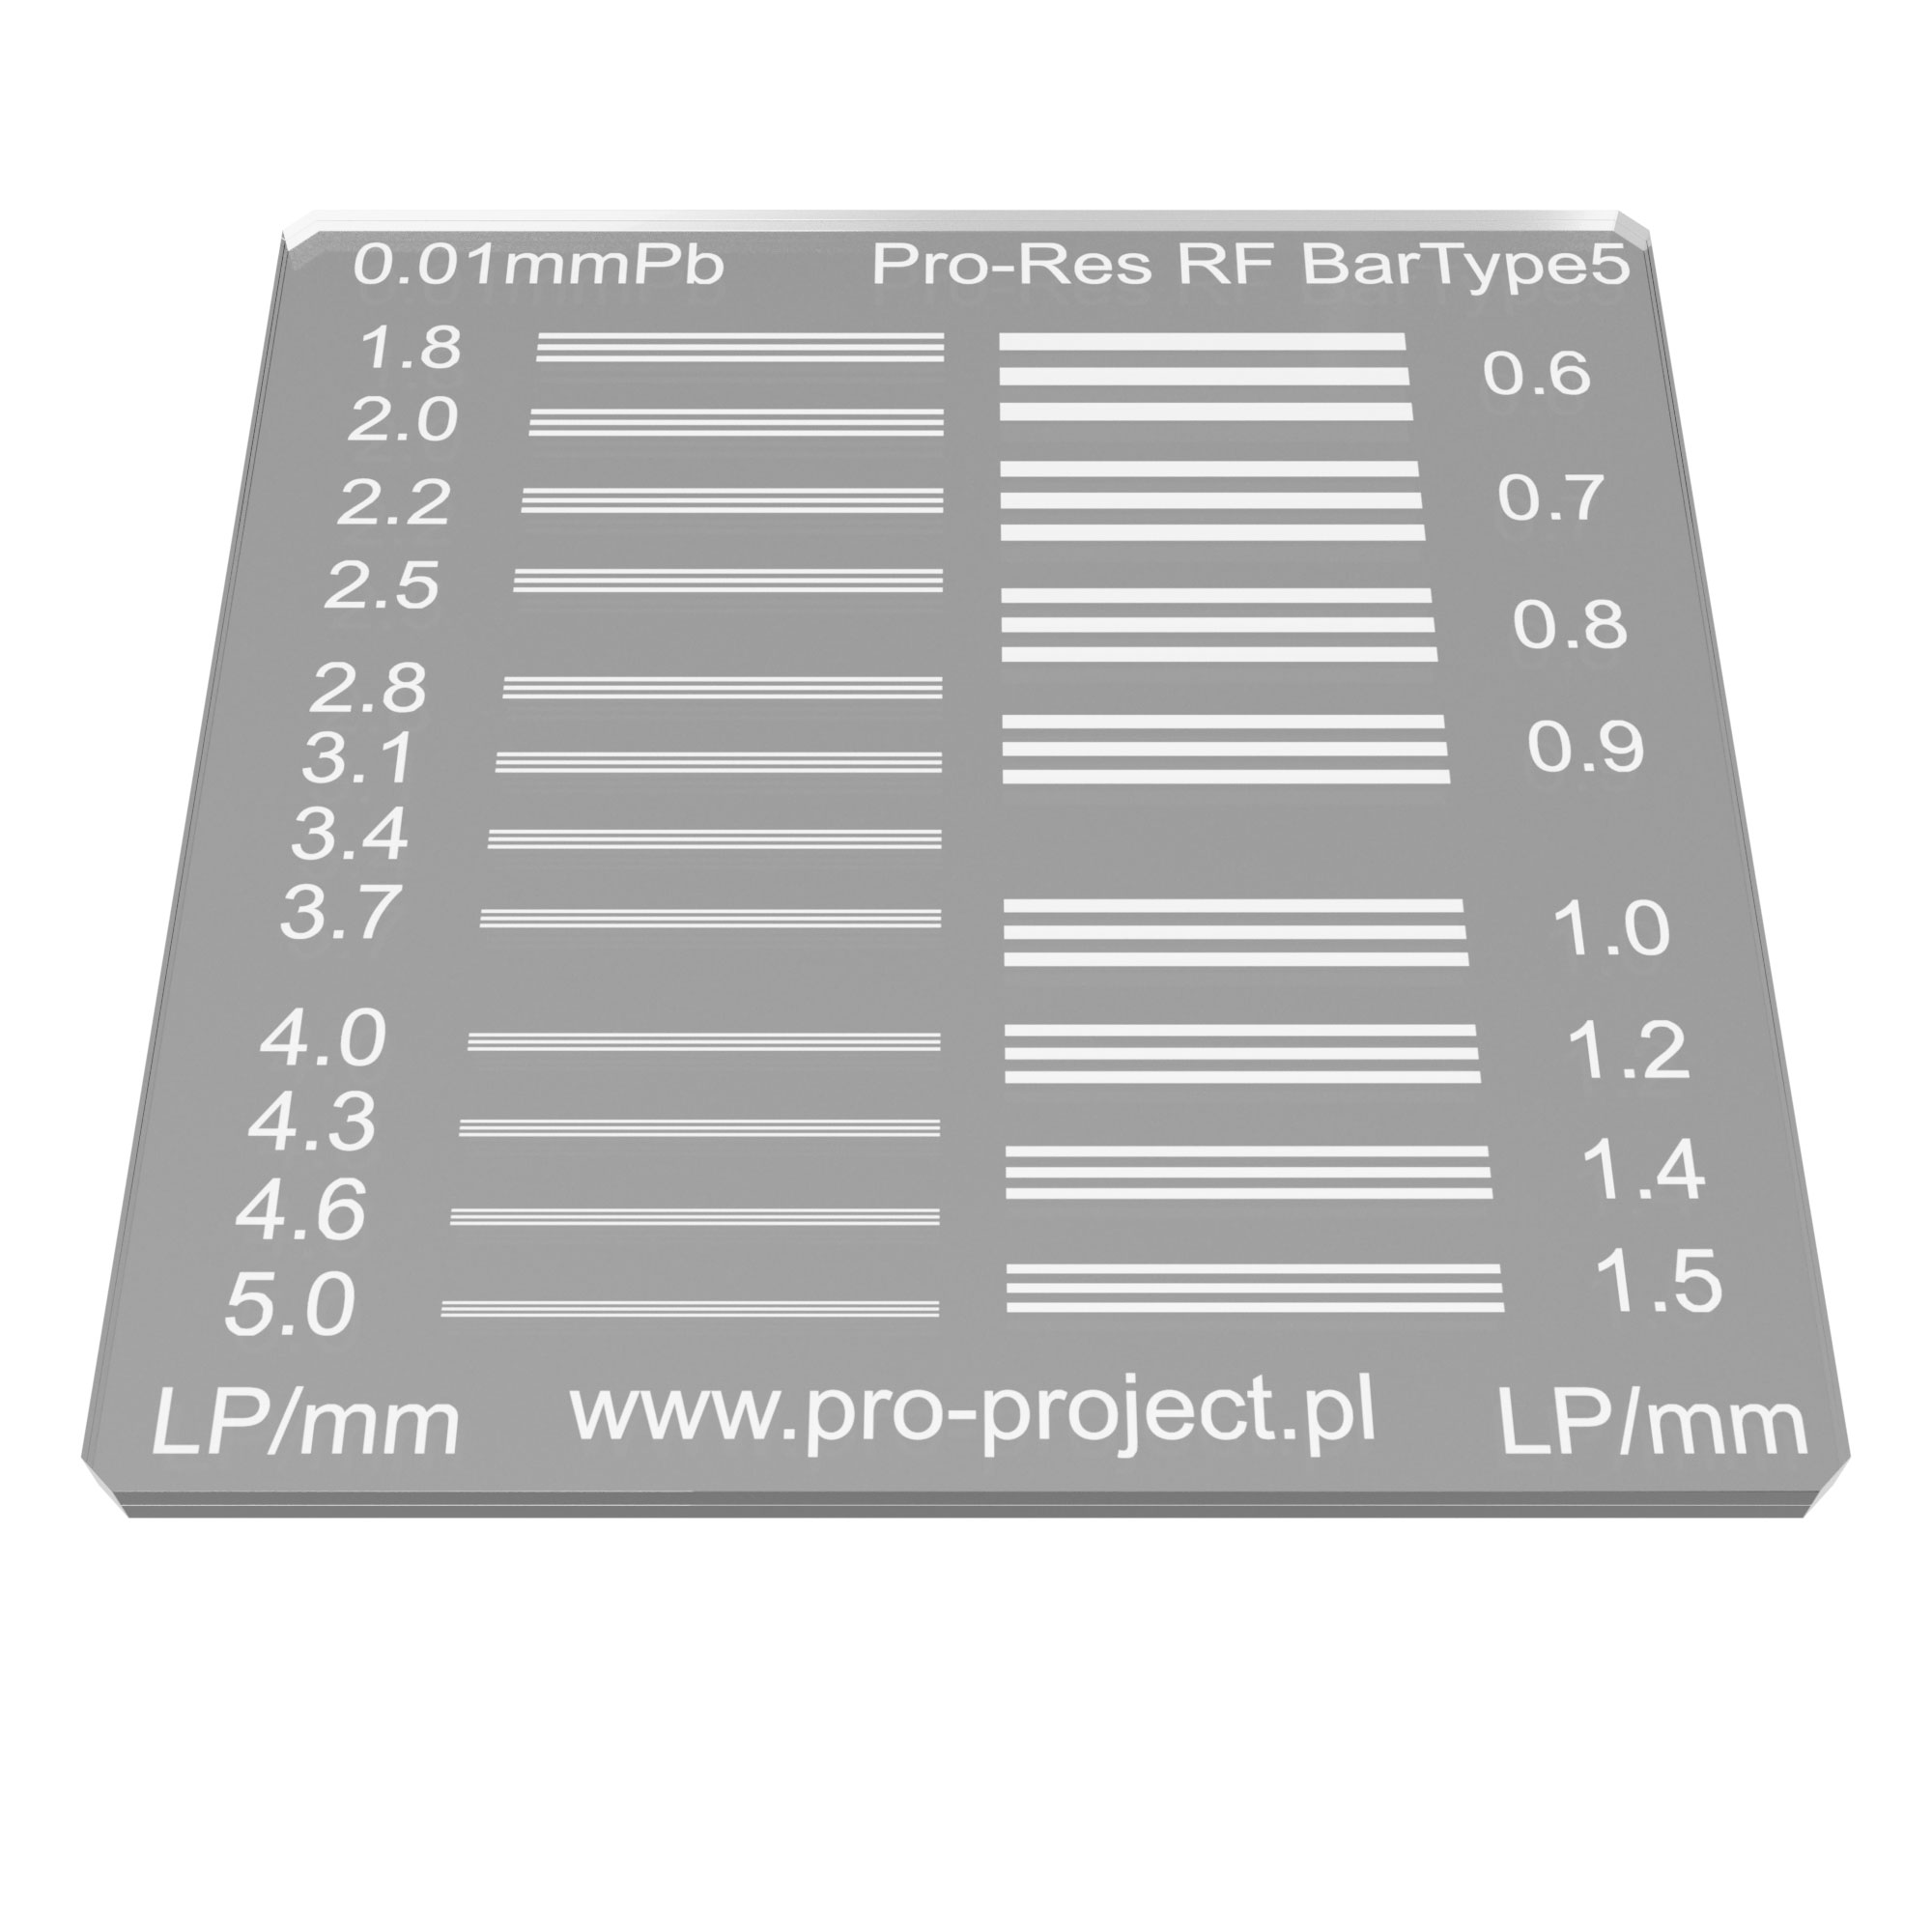 Pro-Res RF BarType 5